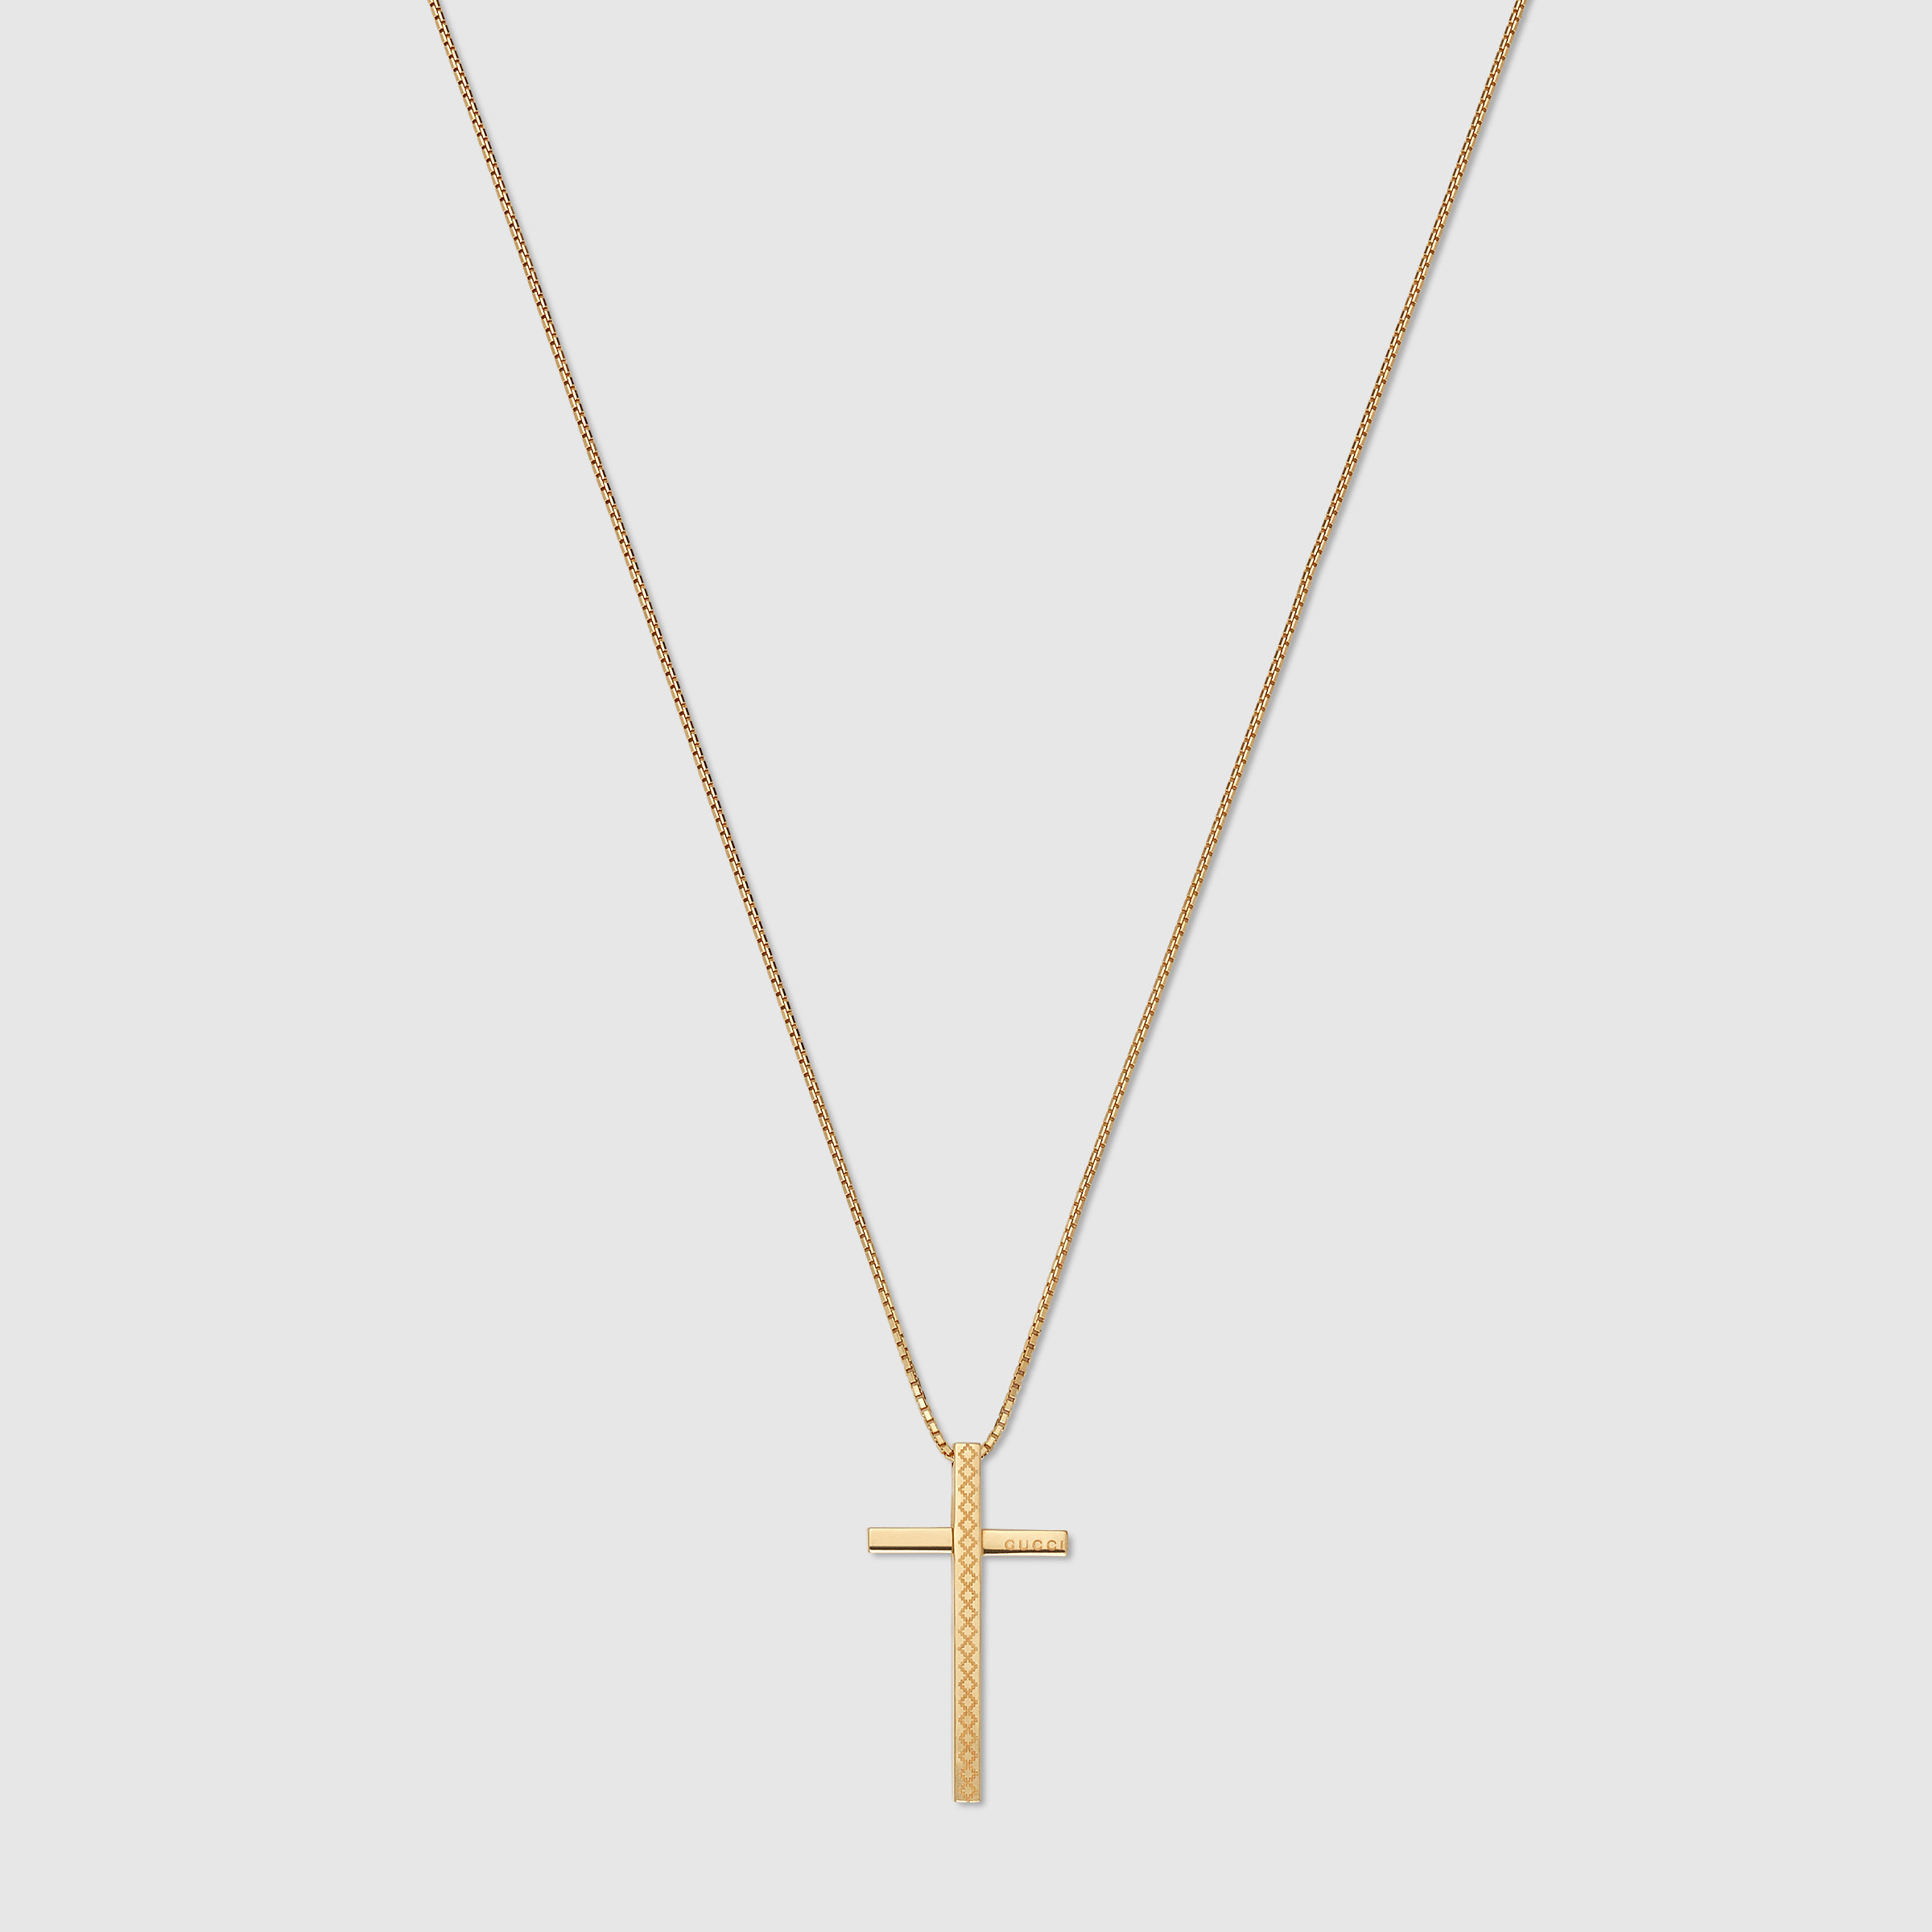 Unique 18k gold cross necklace jewellrys website gucci diamantissima necklace with cross in metallic aloadofball Images